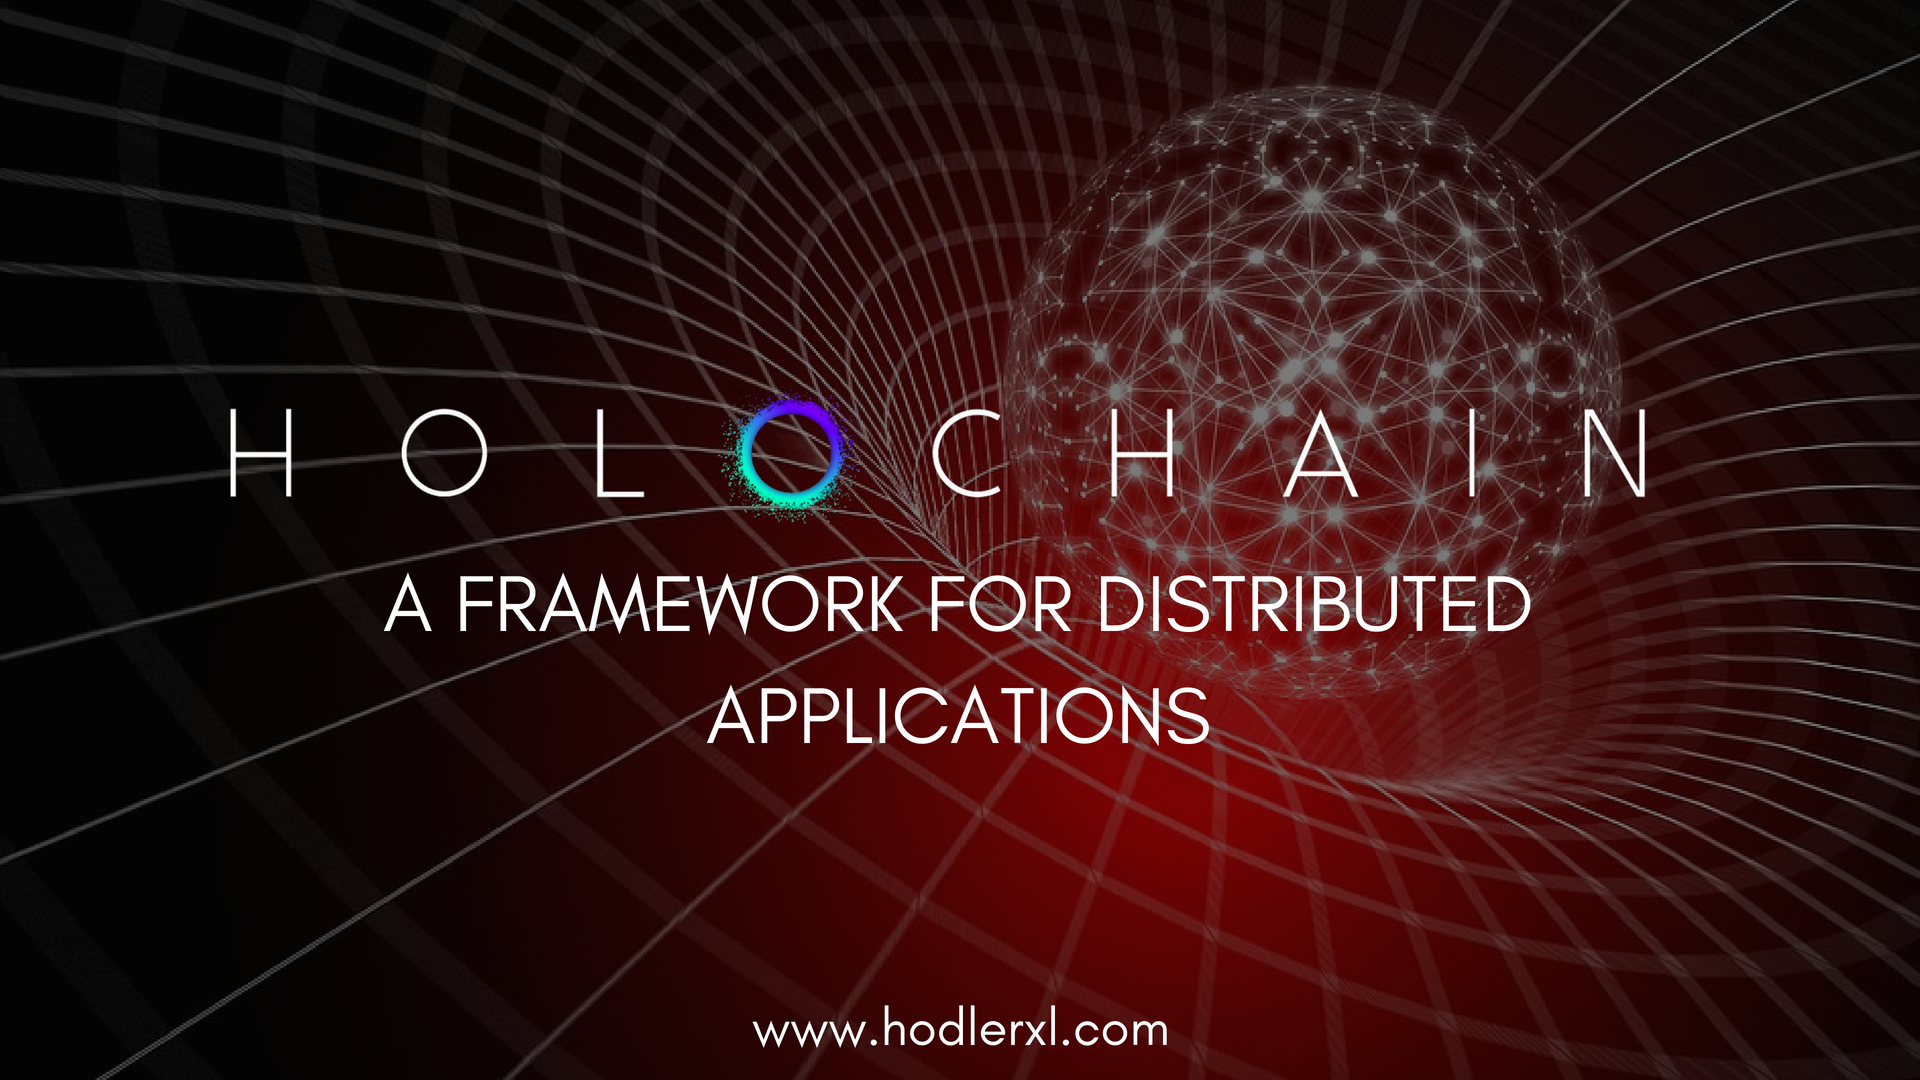 Holochain, A Framework For Distributed Applications